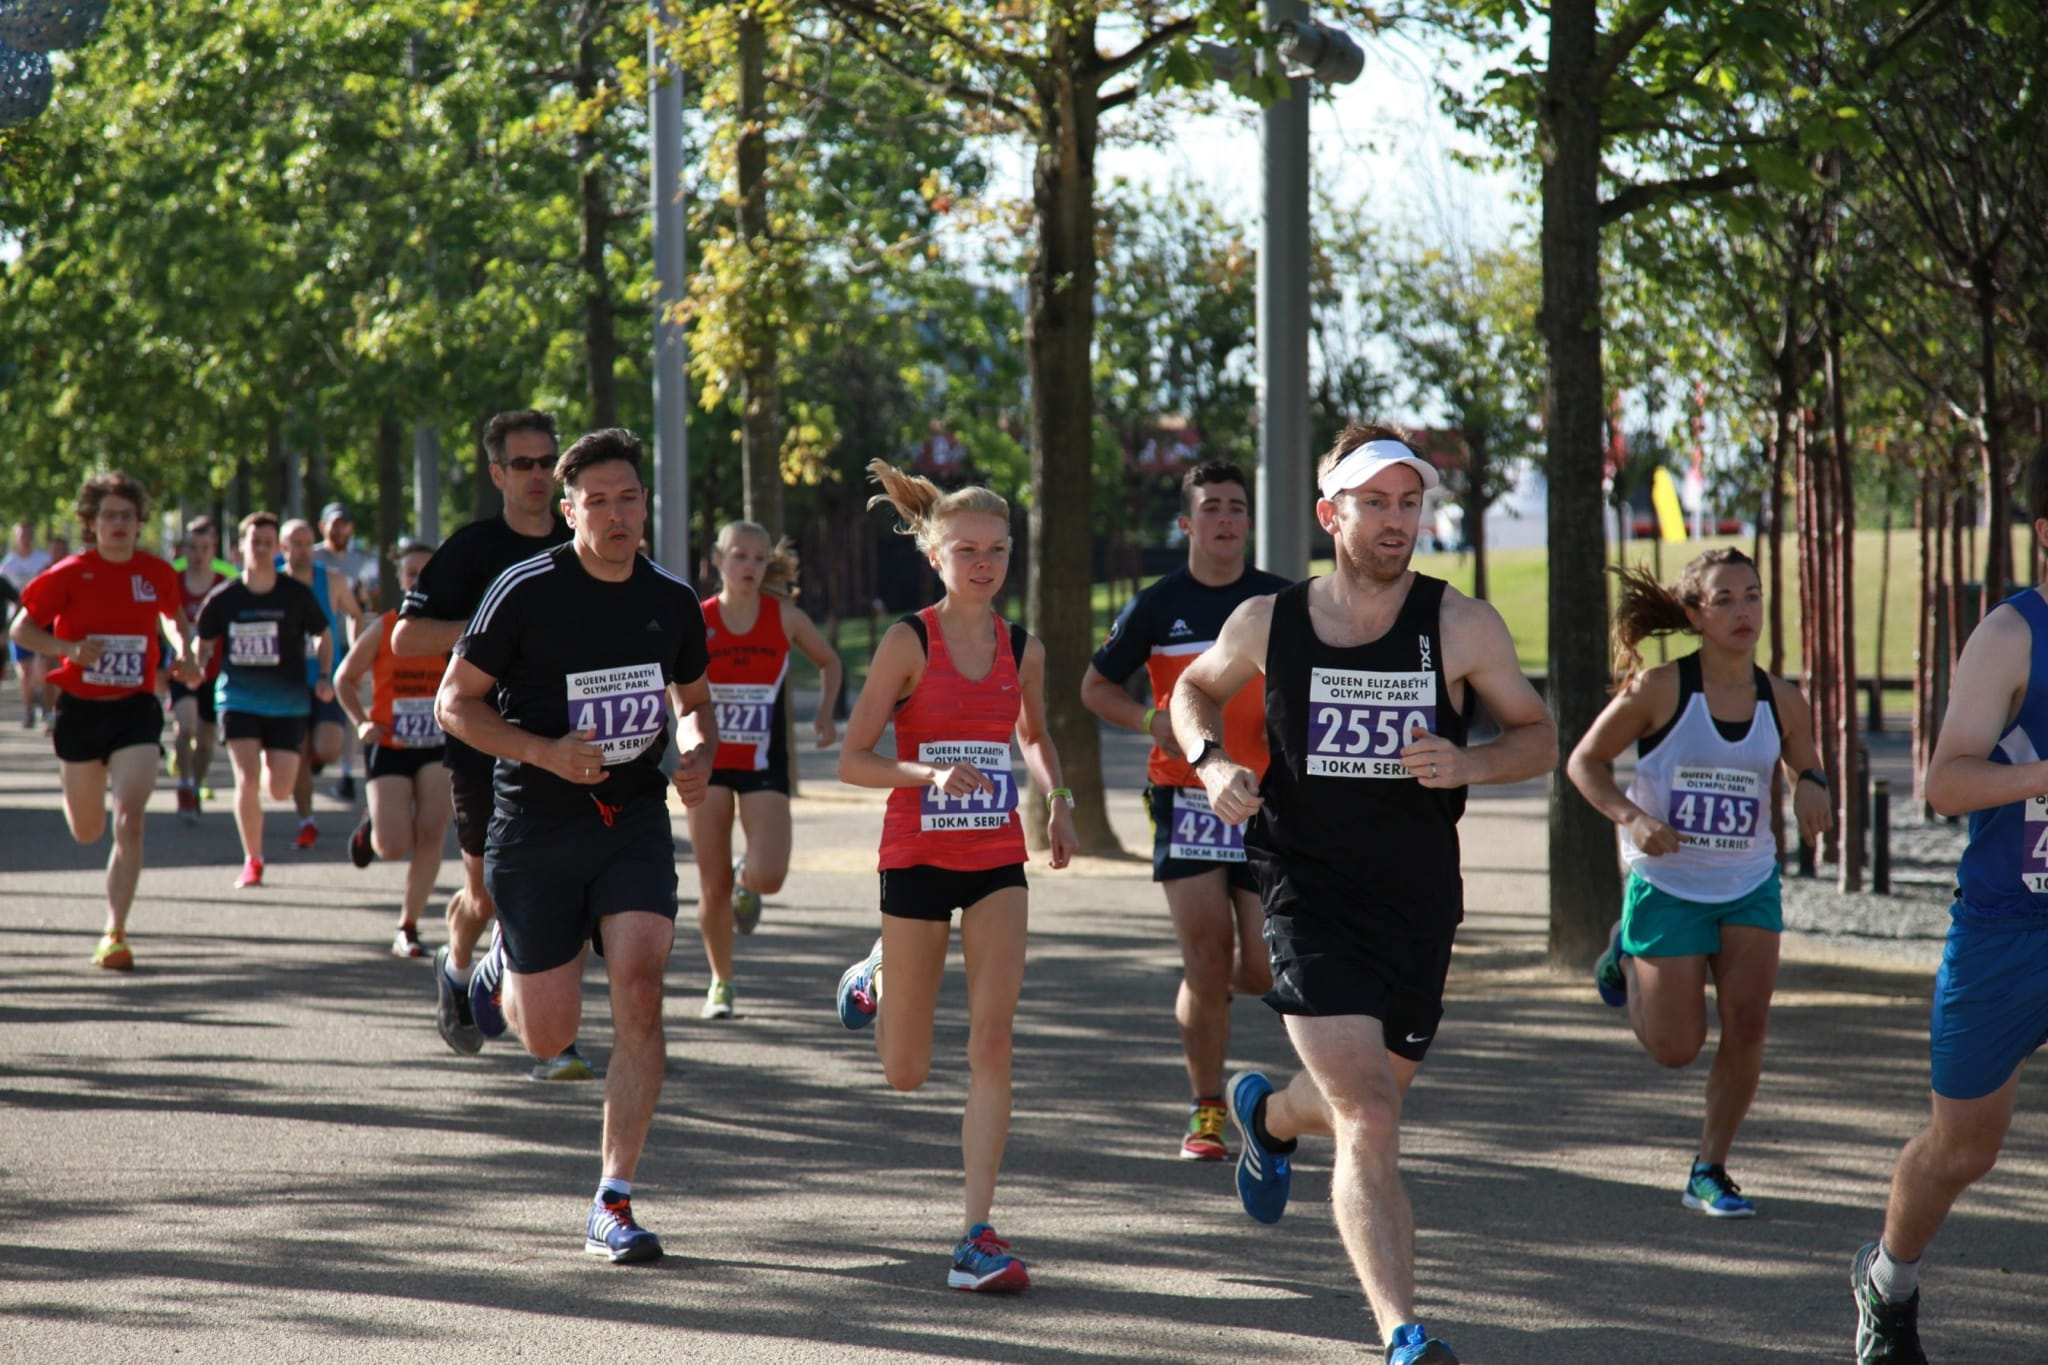 a2dc703cd91 QE Olympic Park - 10K - June 2019 — Sat 1 Jun — Book Now at Let s Do ...